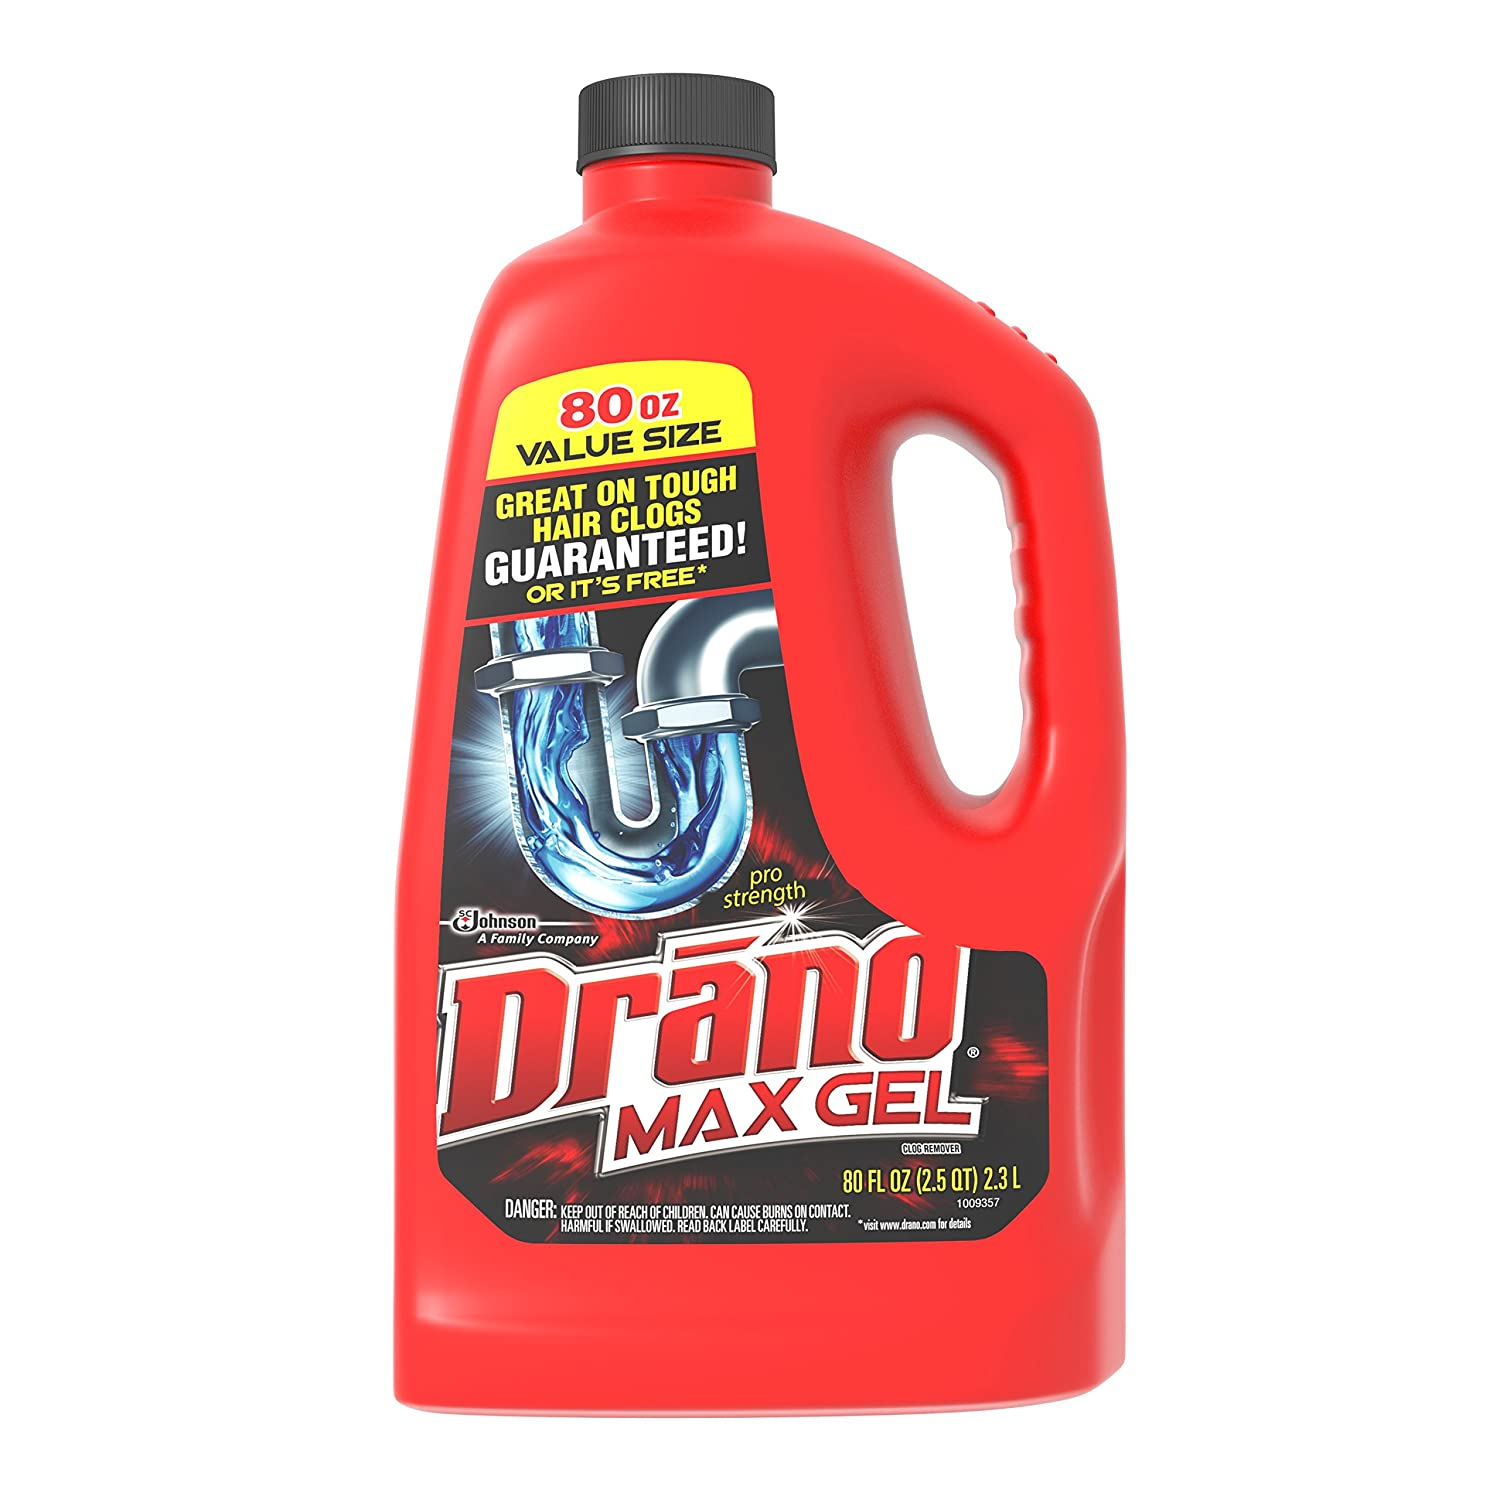 Image result for drano